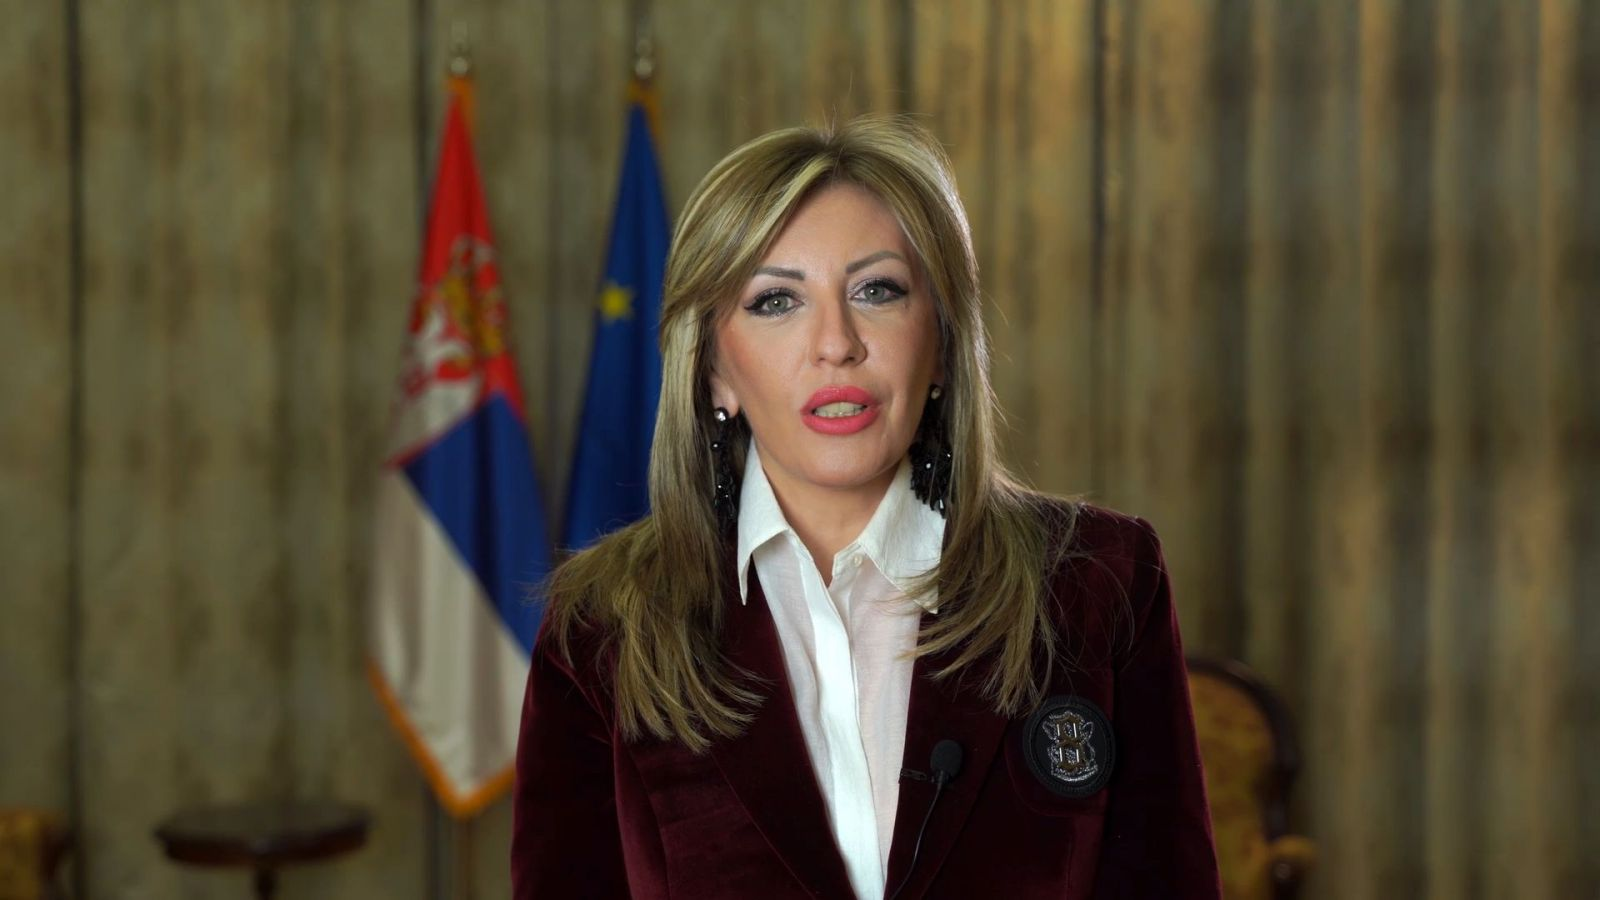 J. Joksimović: Resolution on reforms both positive and critical